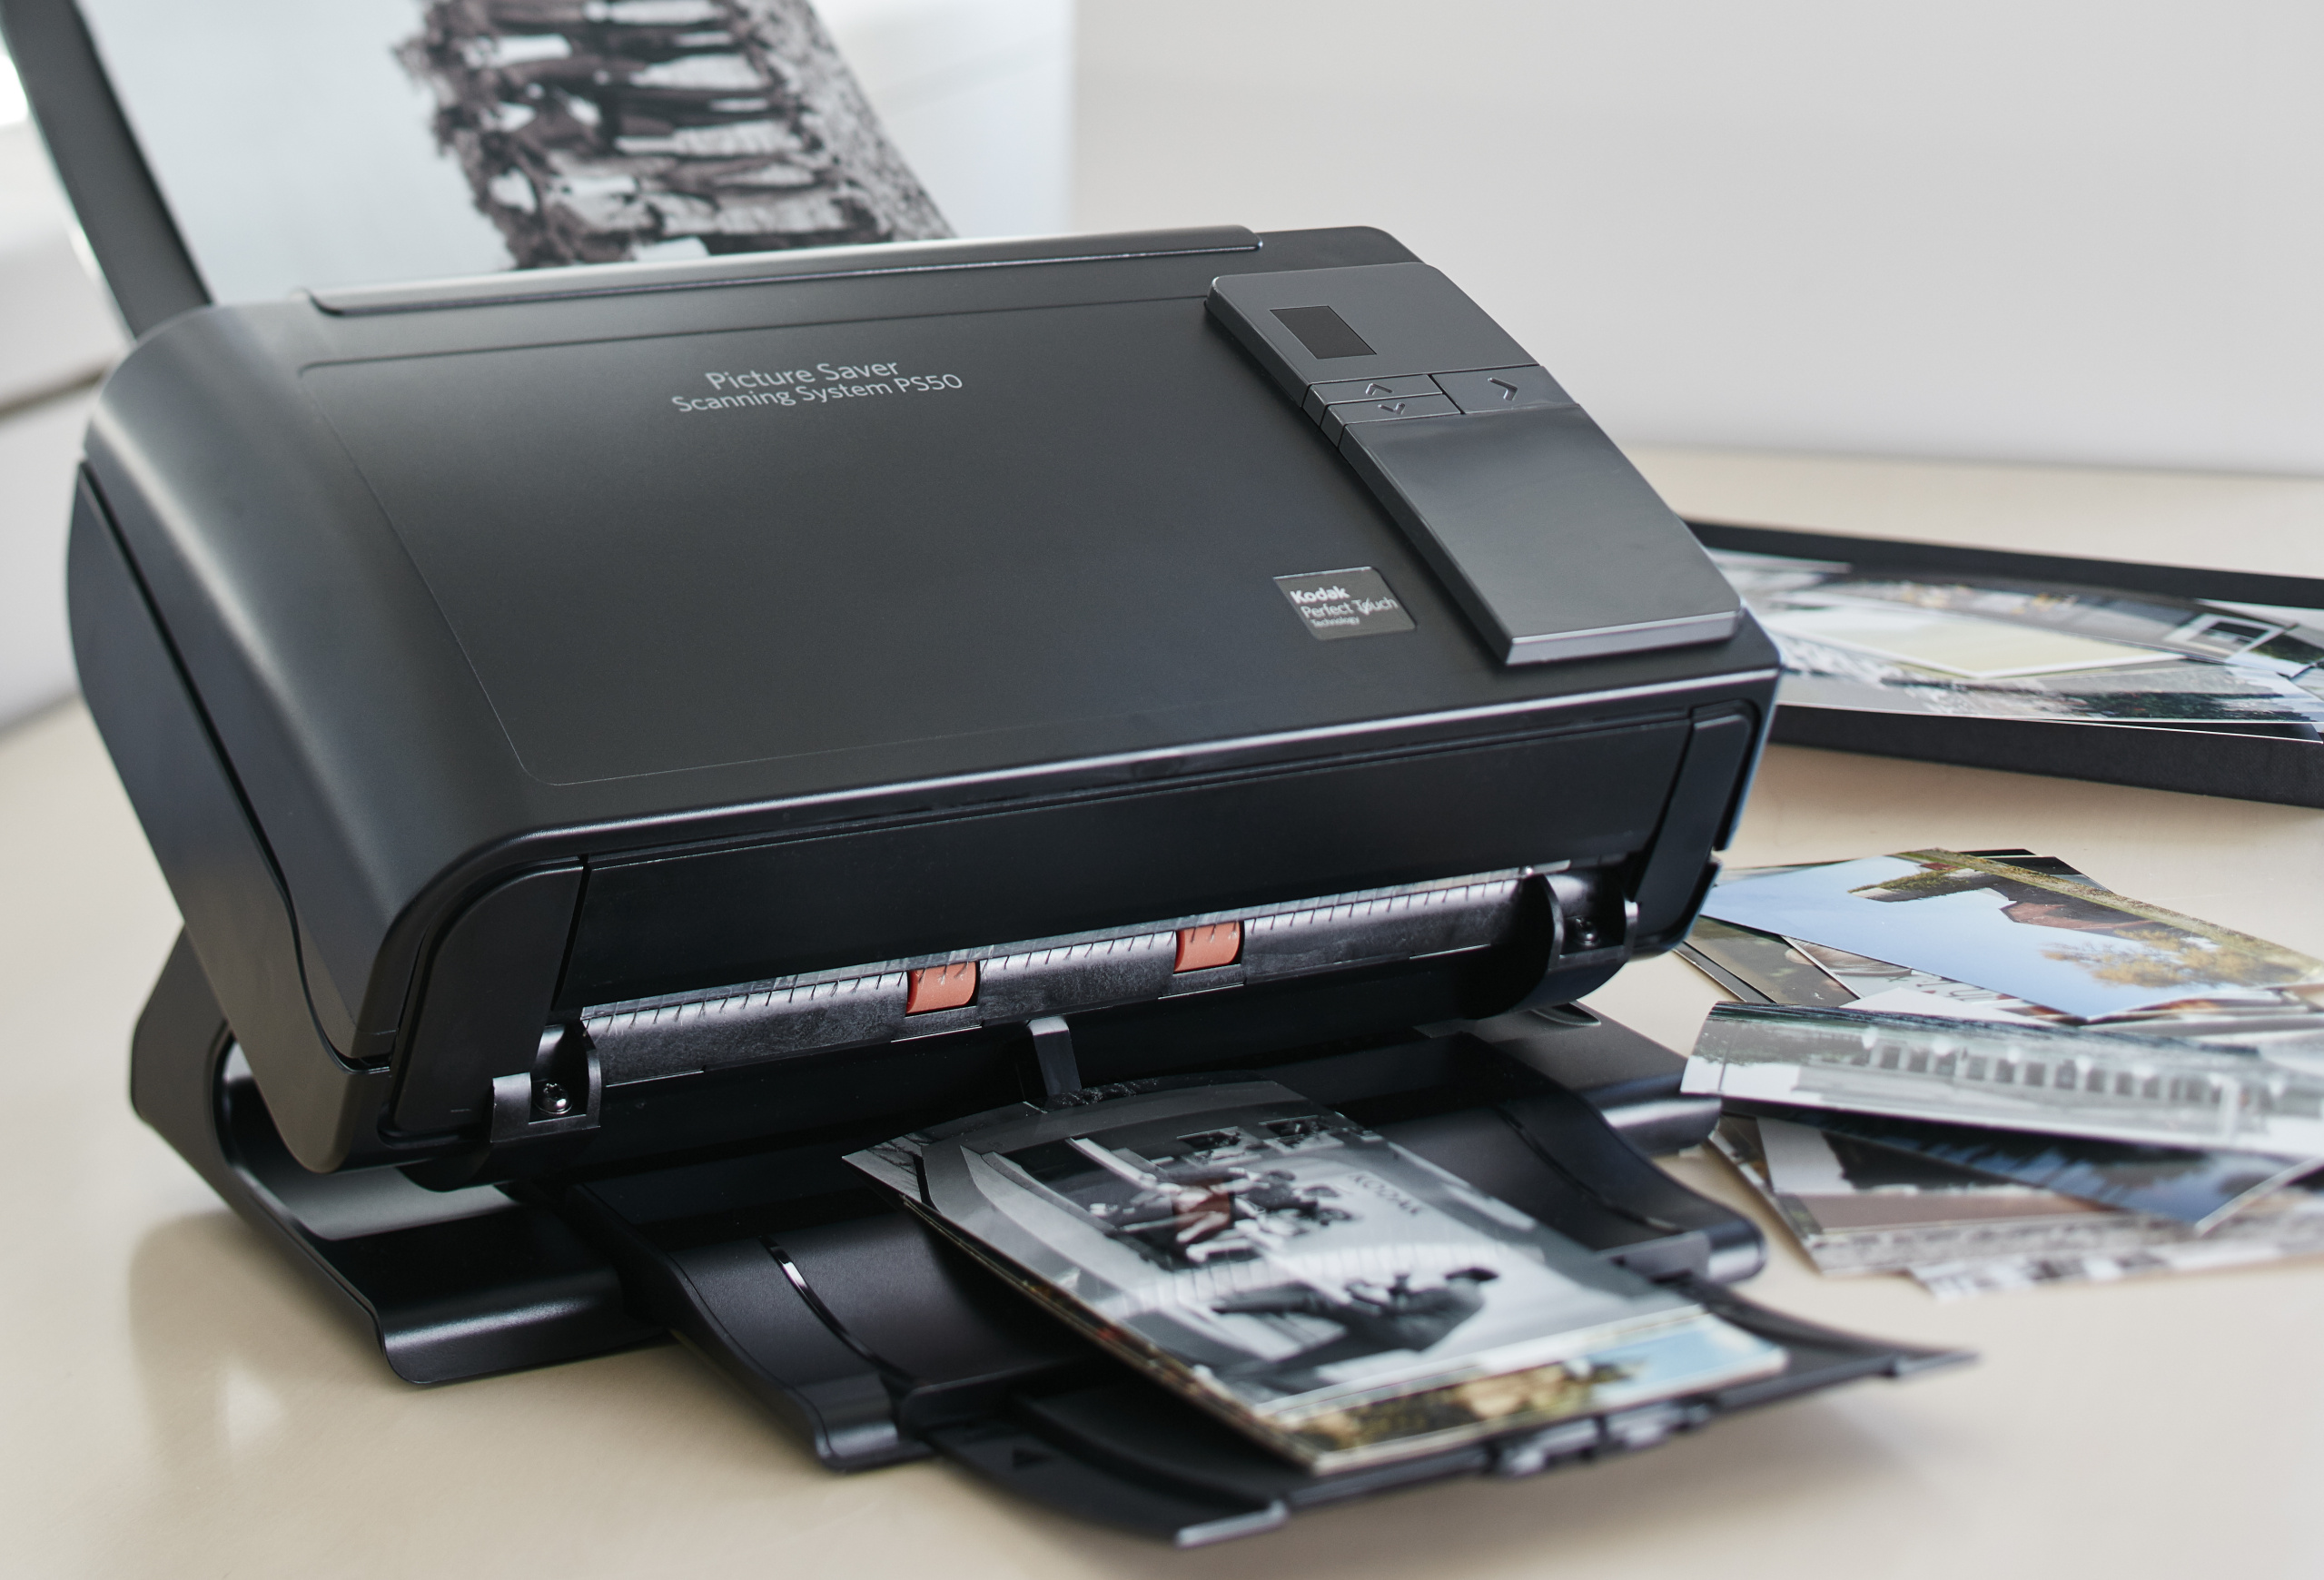 scansnap fujitsu with feeder photo com multiple scanners pcmag asp photos rating for review